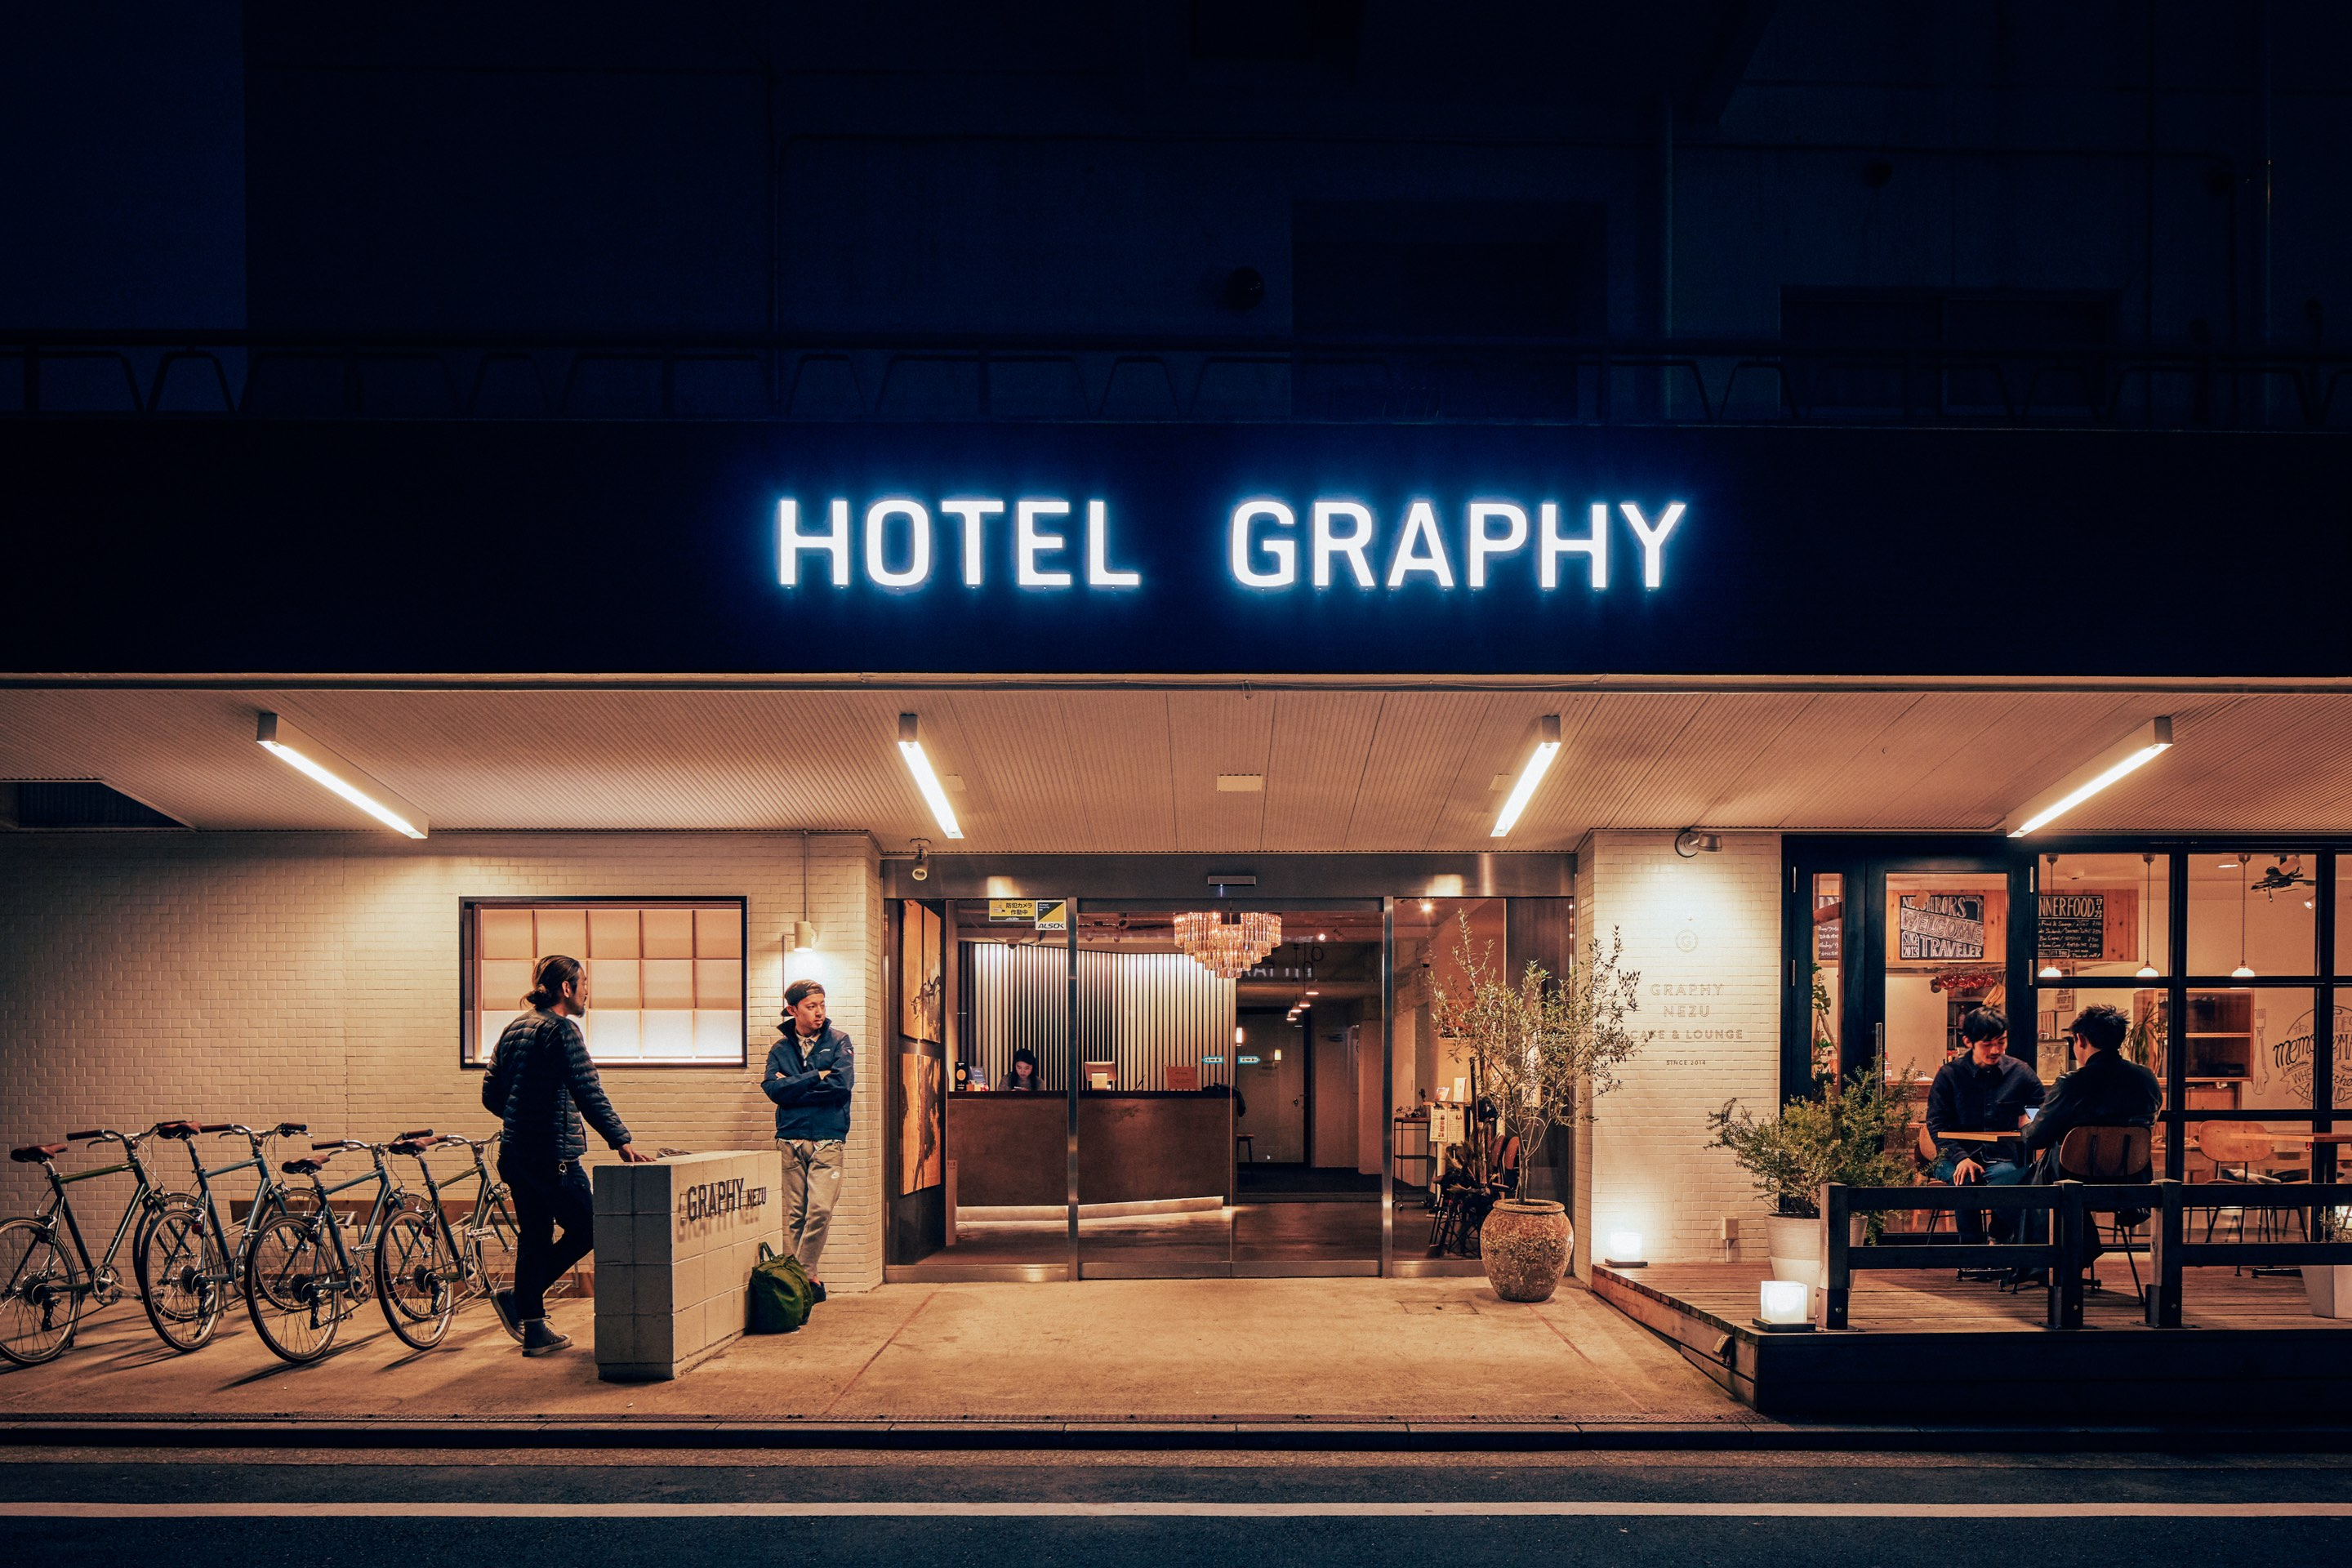 5 Reasons Why Hotel Graphy Nezu is the Coolest Hotel in Tokyo